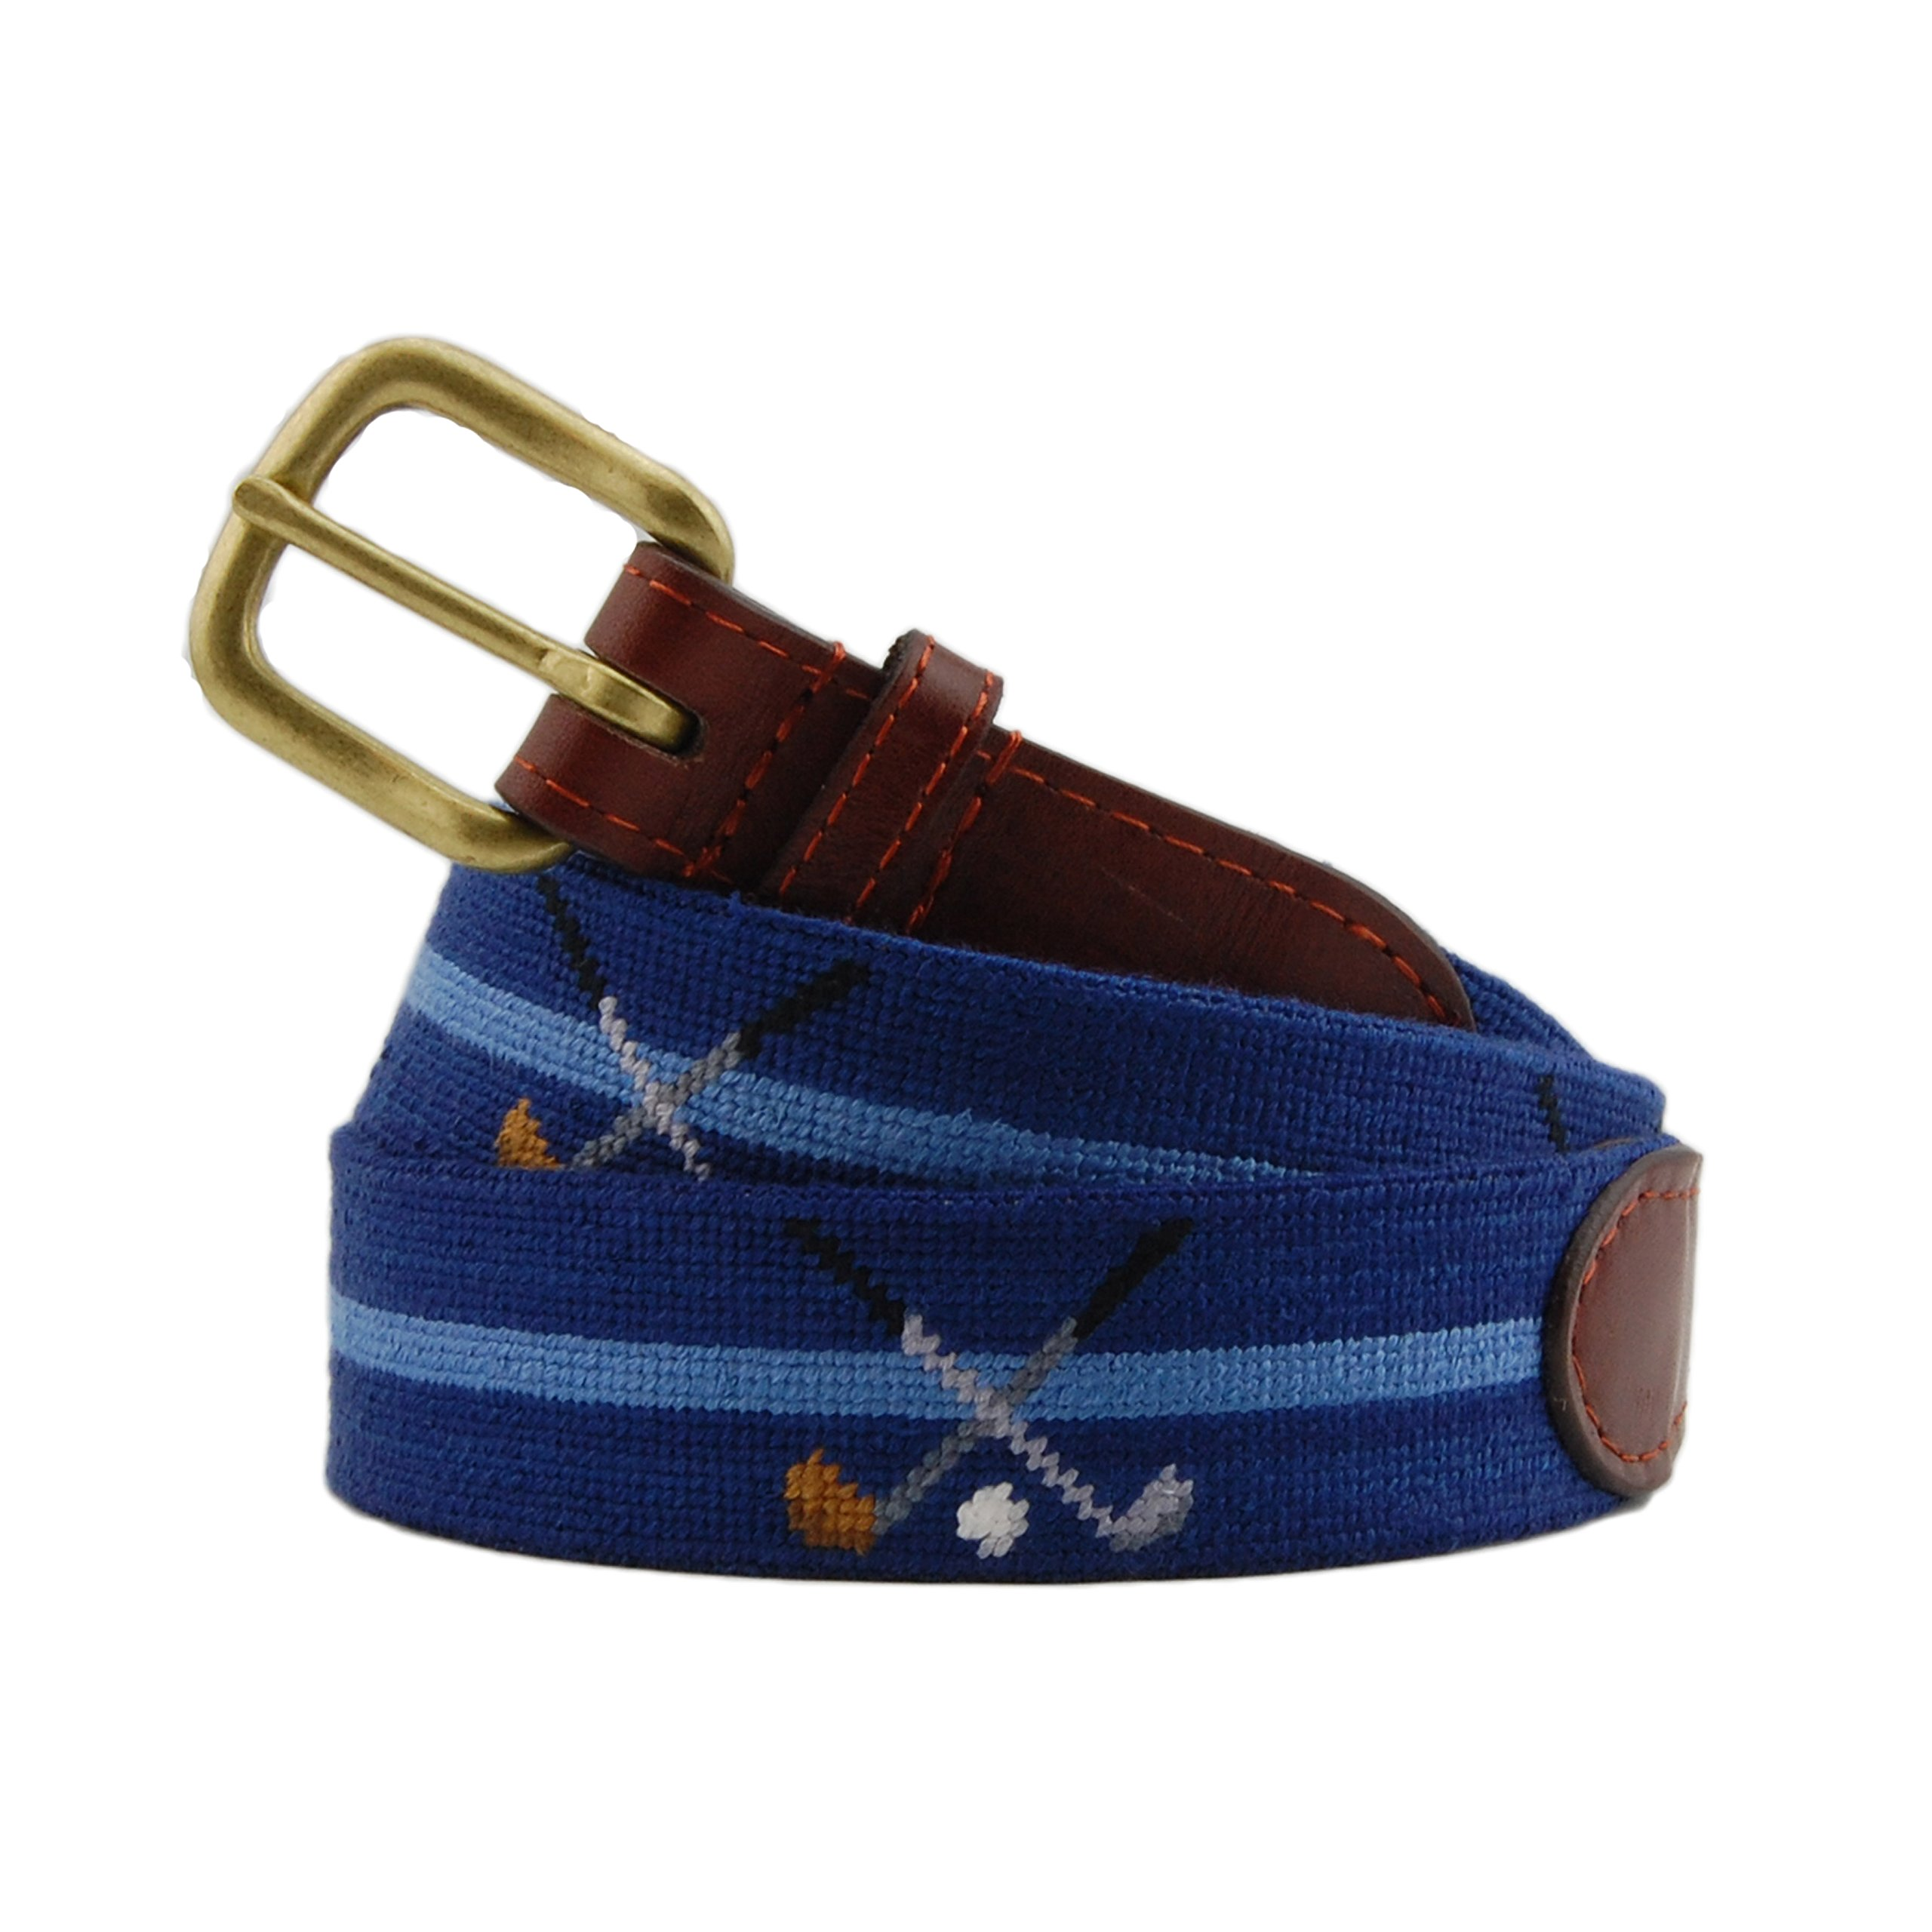 Smathers & Branson Men's Crossed Clubs Needlepoint Belt 40 Classic Navy by Smathers & Branson